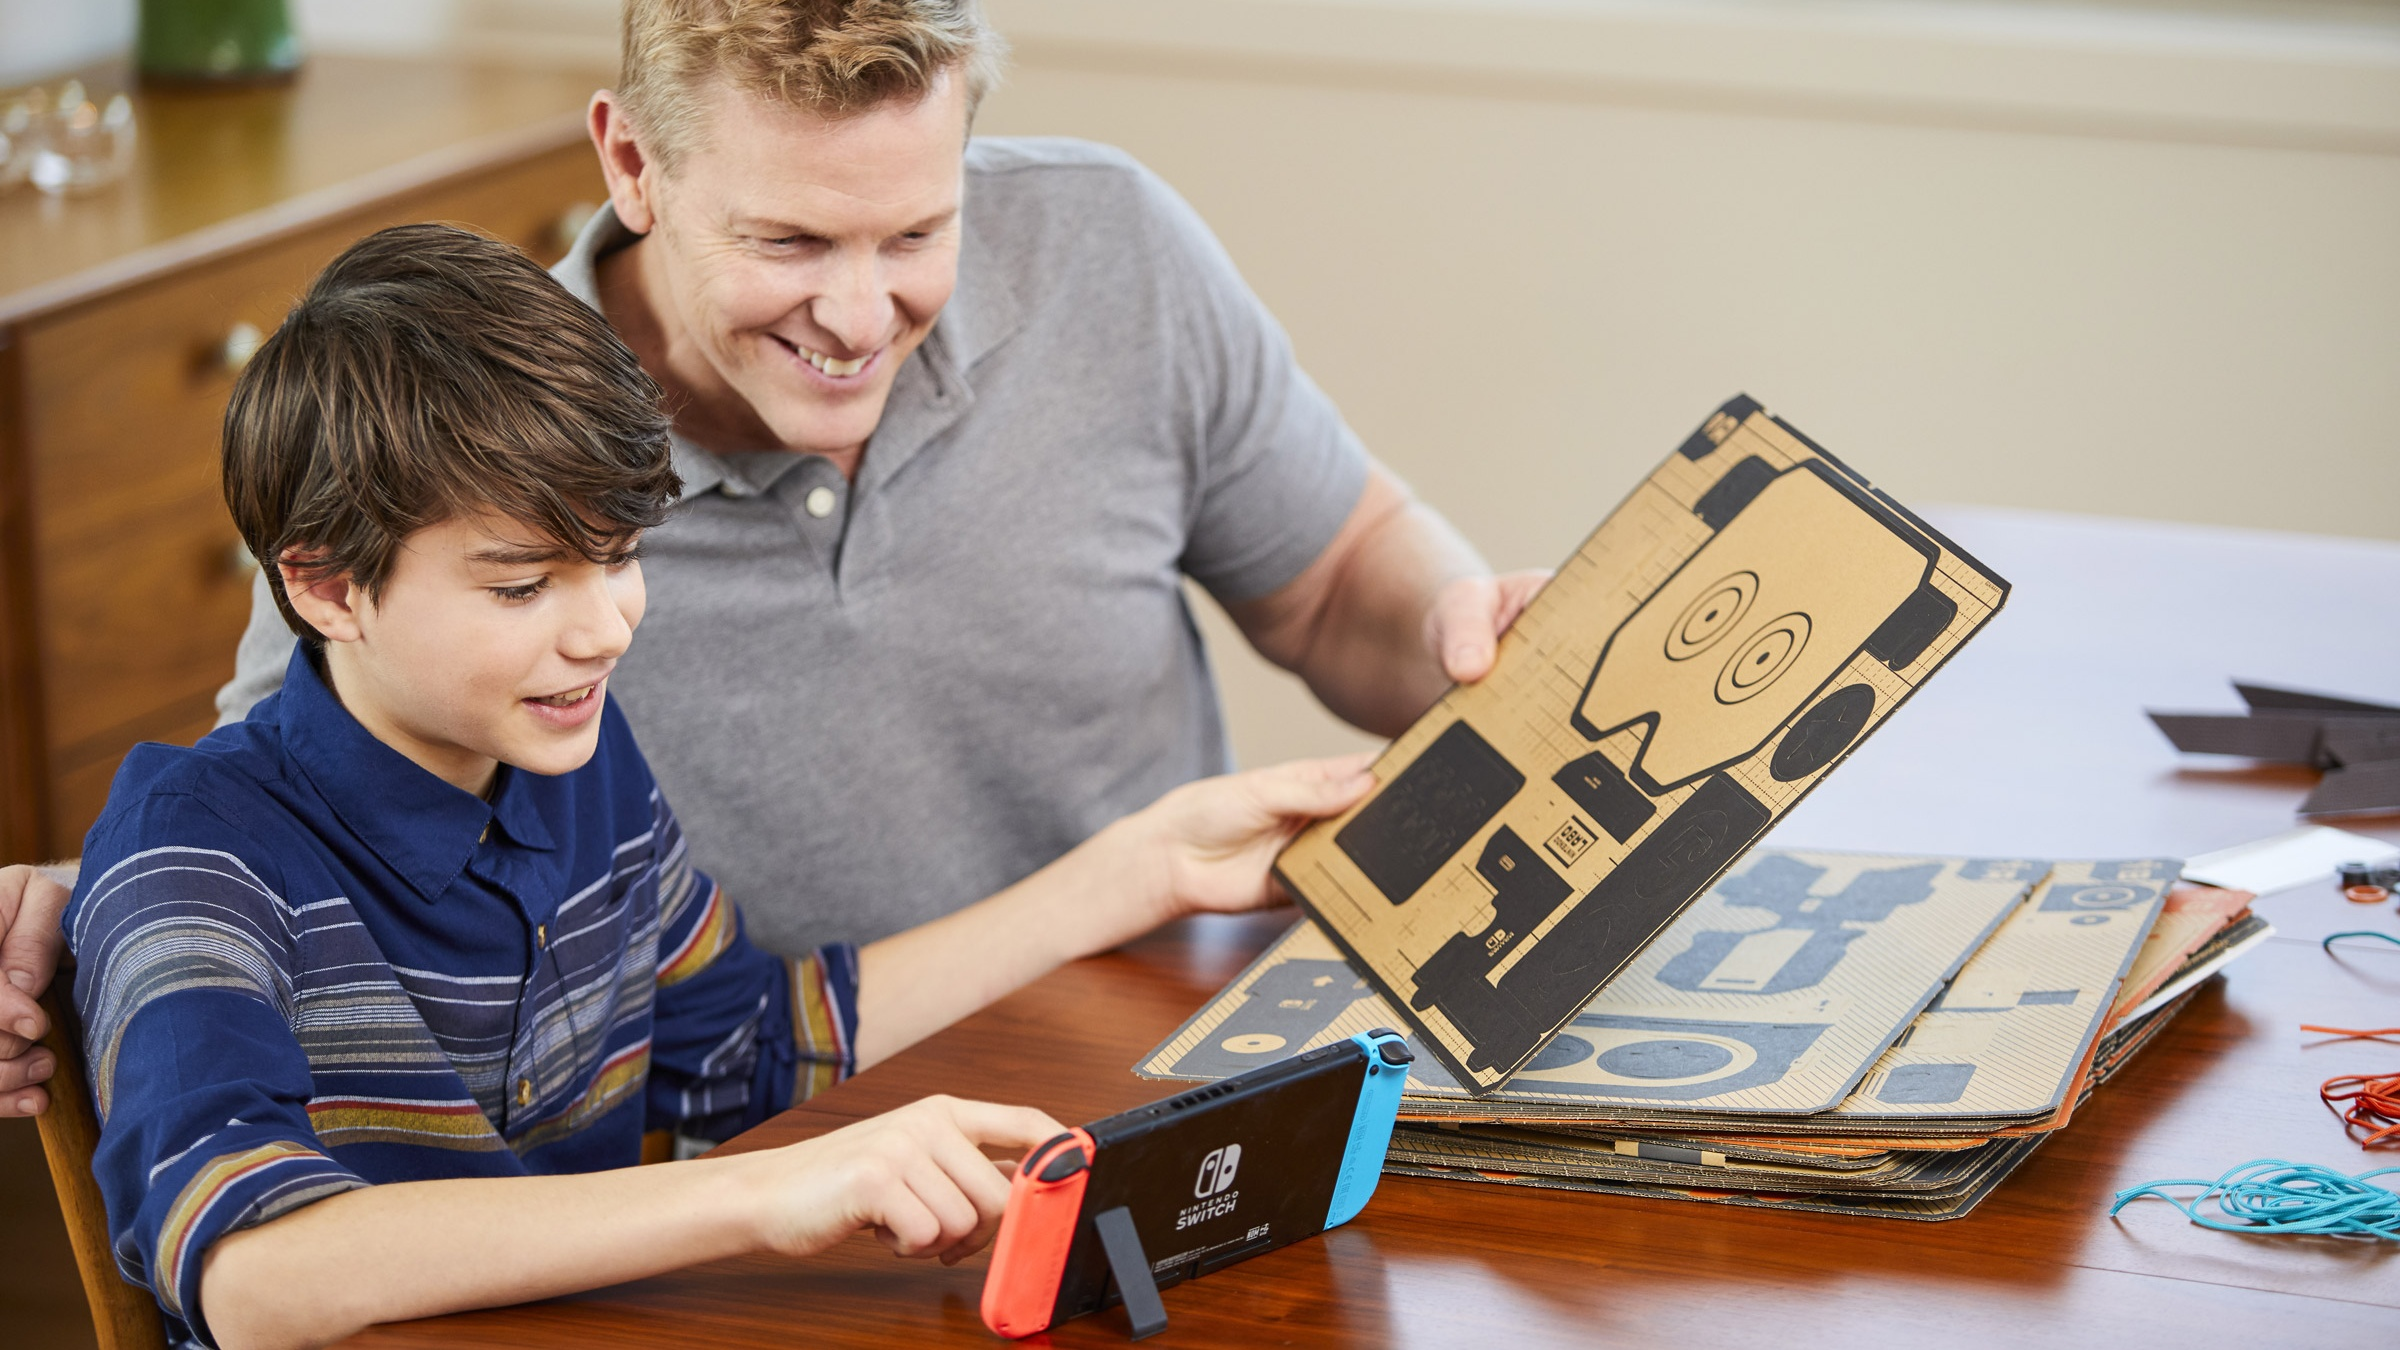 Forget VR and AR, Nintendo Labo puts the future in your hands